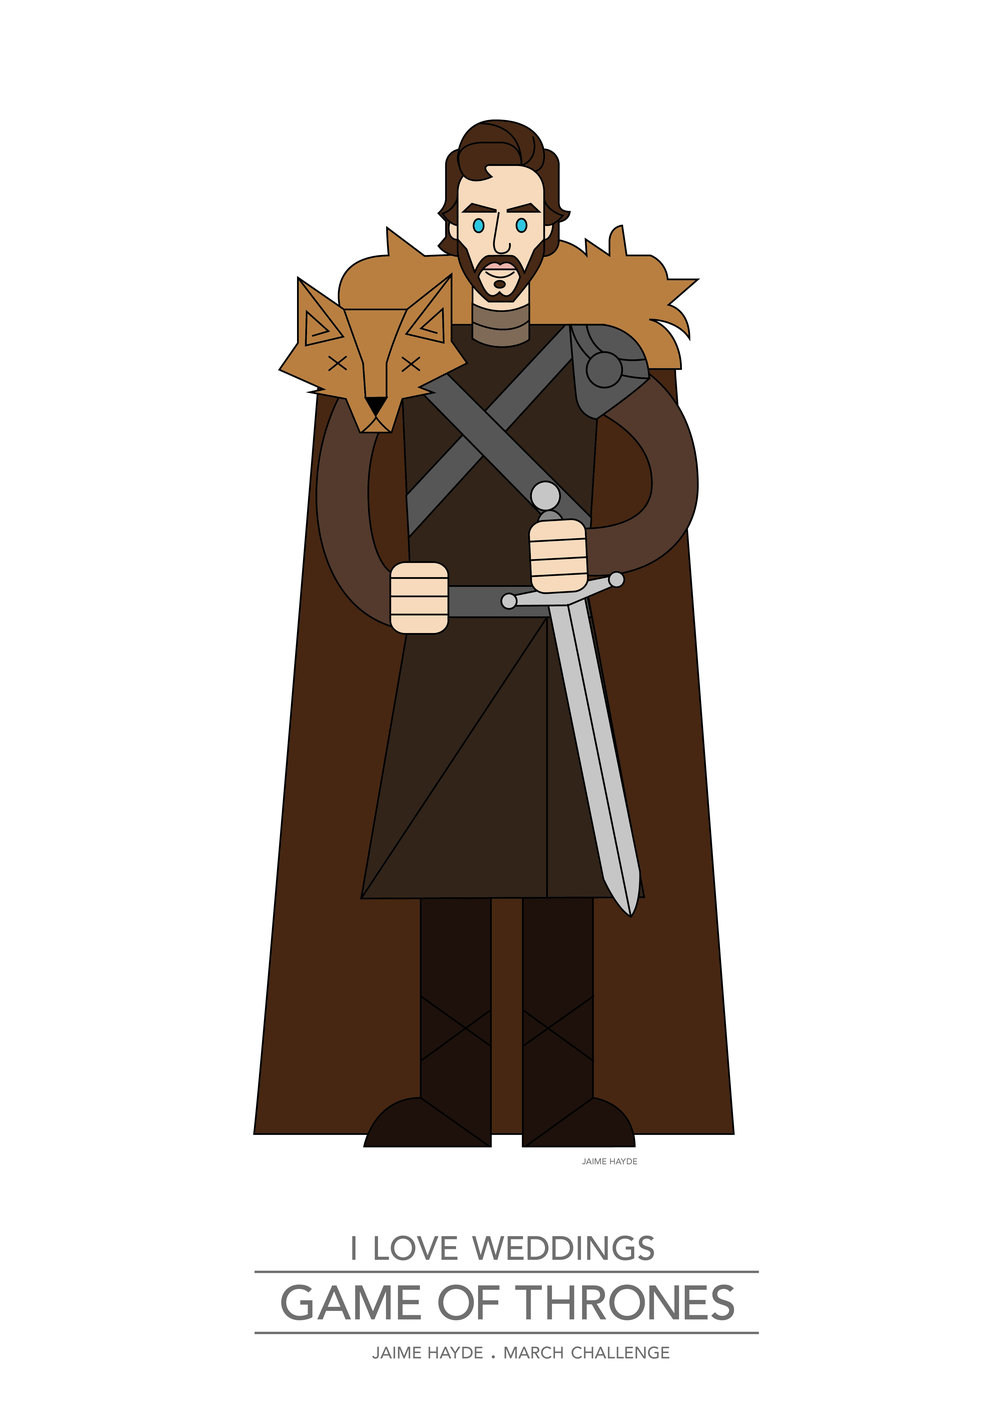 Game-of-thrones-Juego-de-tronos-rob stark.jpg